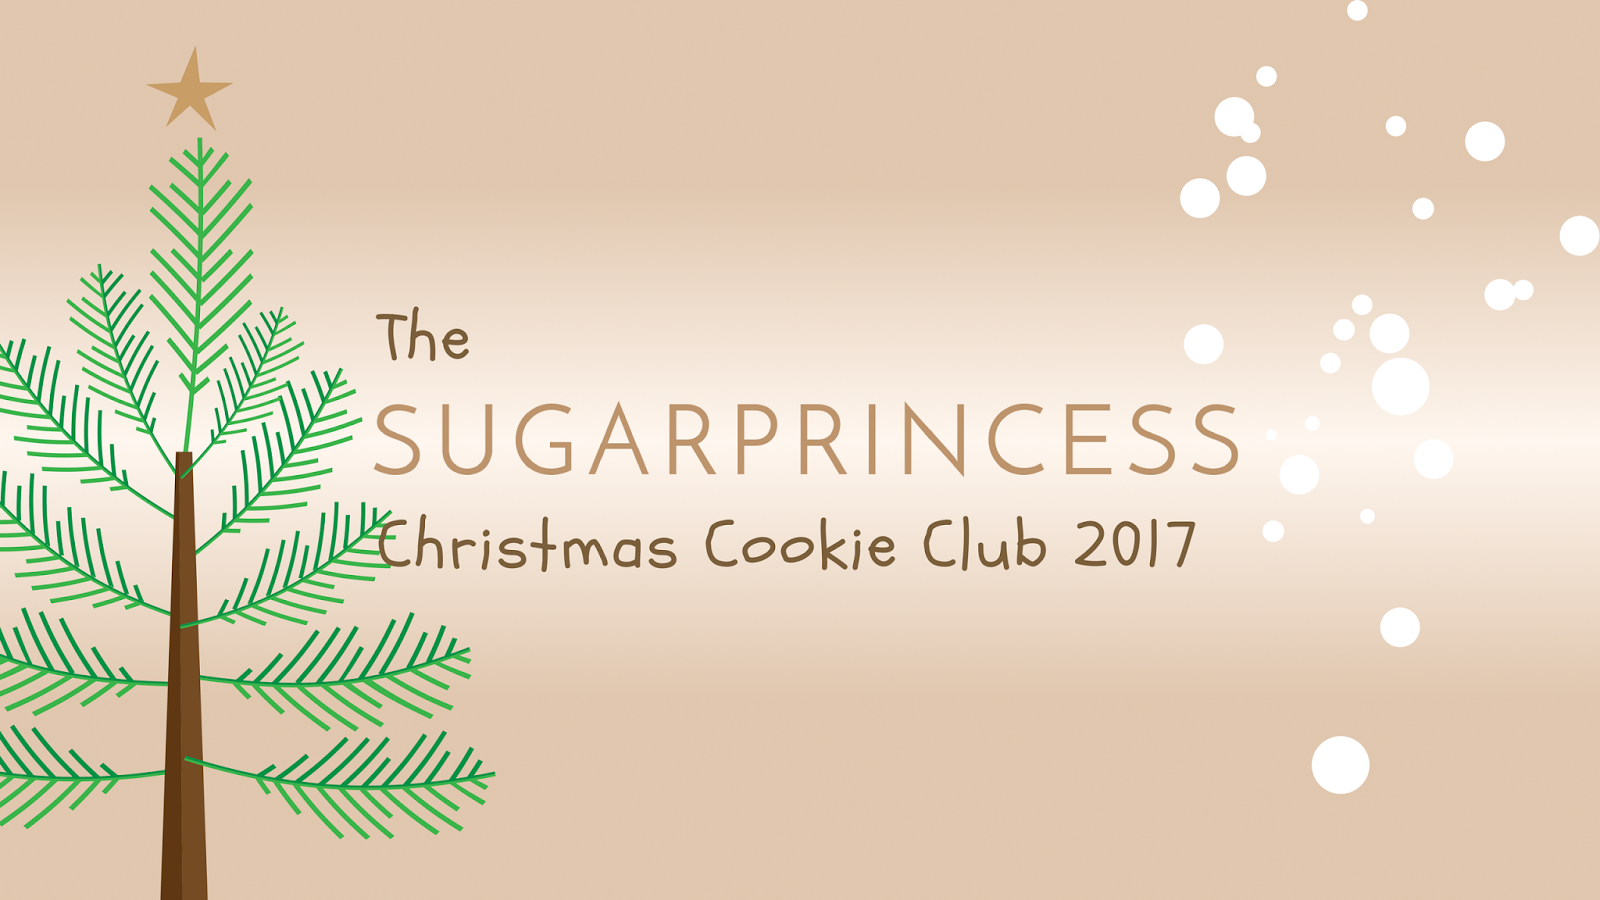 The Sugarprincess Christmas Cookie Club 2017